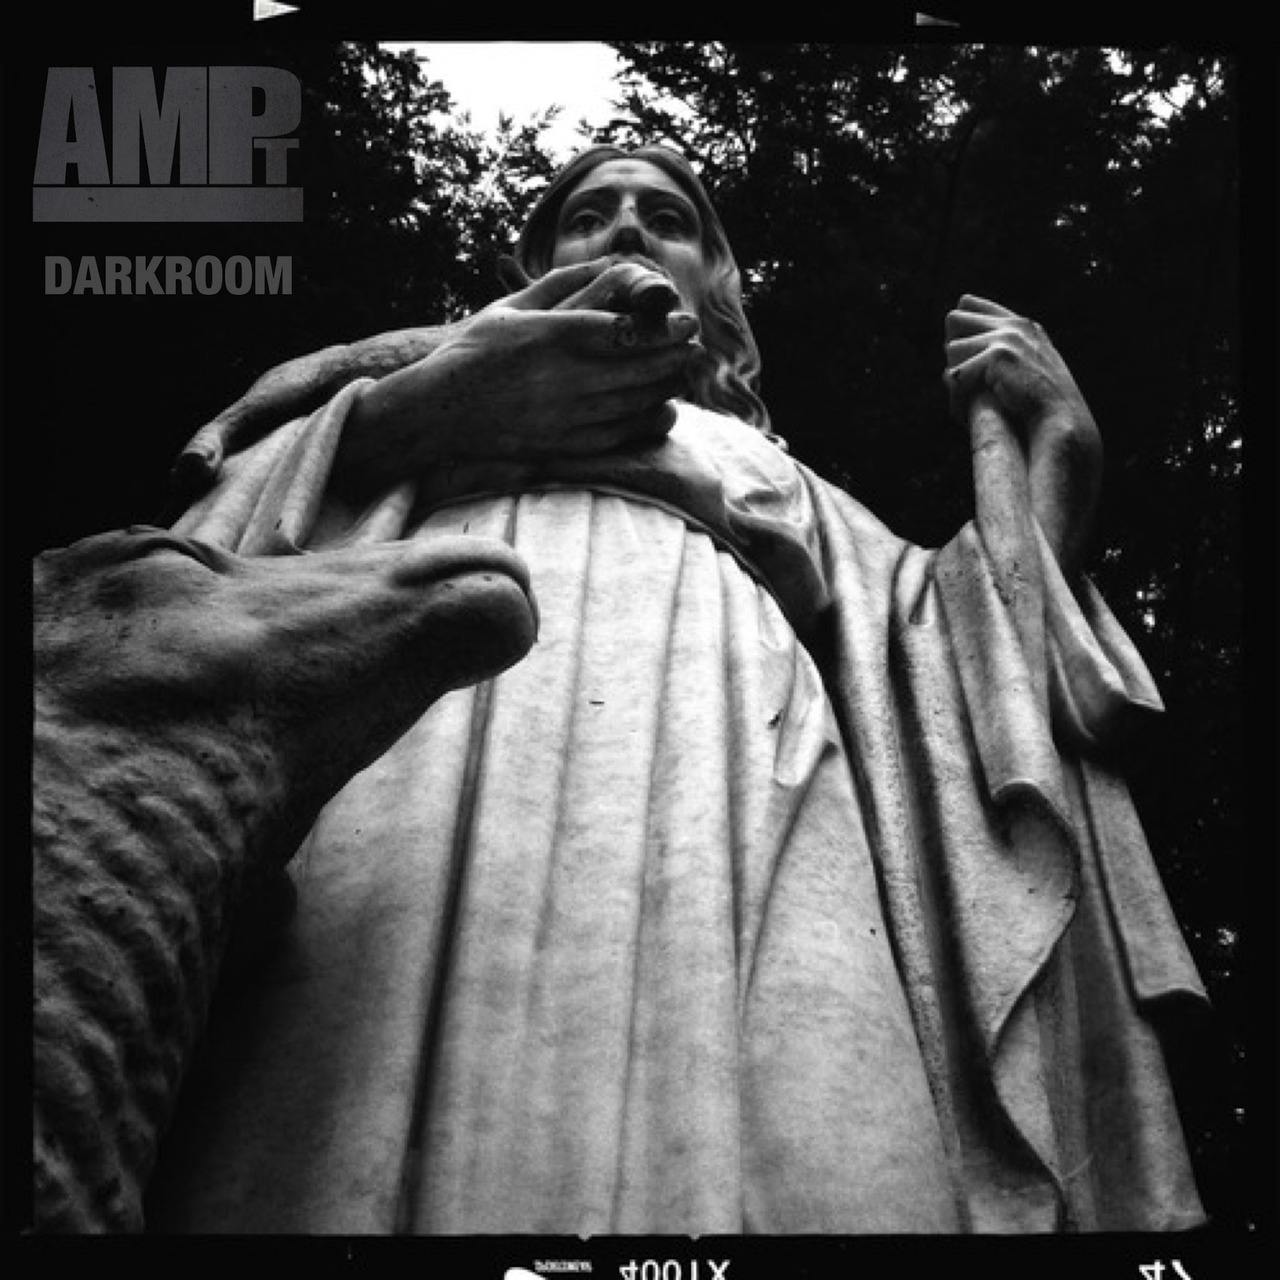 AMPt Darkroom - Using Points of View to Create More Interesting ImagesYour point of view can either work for or against you while shooting. While there are, of course, many things to take into account when making a photo (placement, lighting, background, etc.) there's no doubt that point of view can play a huge part in making an image stand out from the rest.Read the FULL LESSON where Anna shows us some of the ways you can create more interesting images just by changing your point of view.Check back for new Darkroom mobile photography lessons every Monday & Tuesday @ ampteam.org